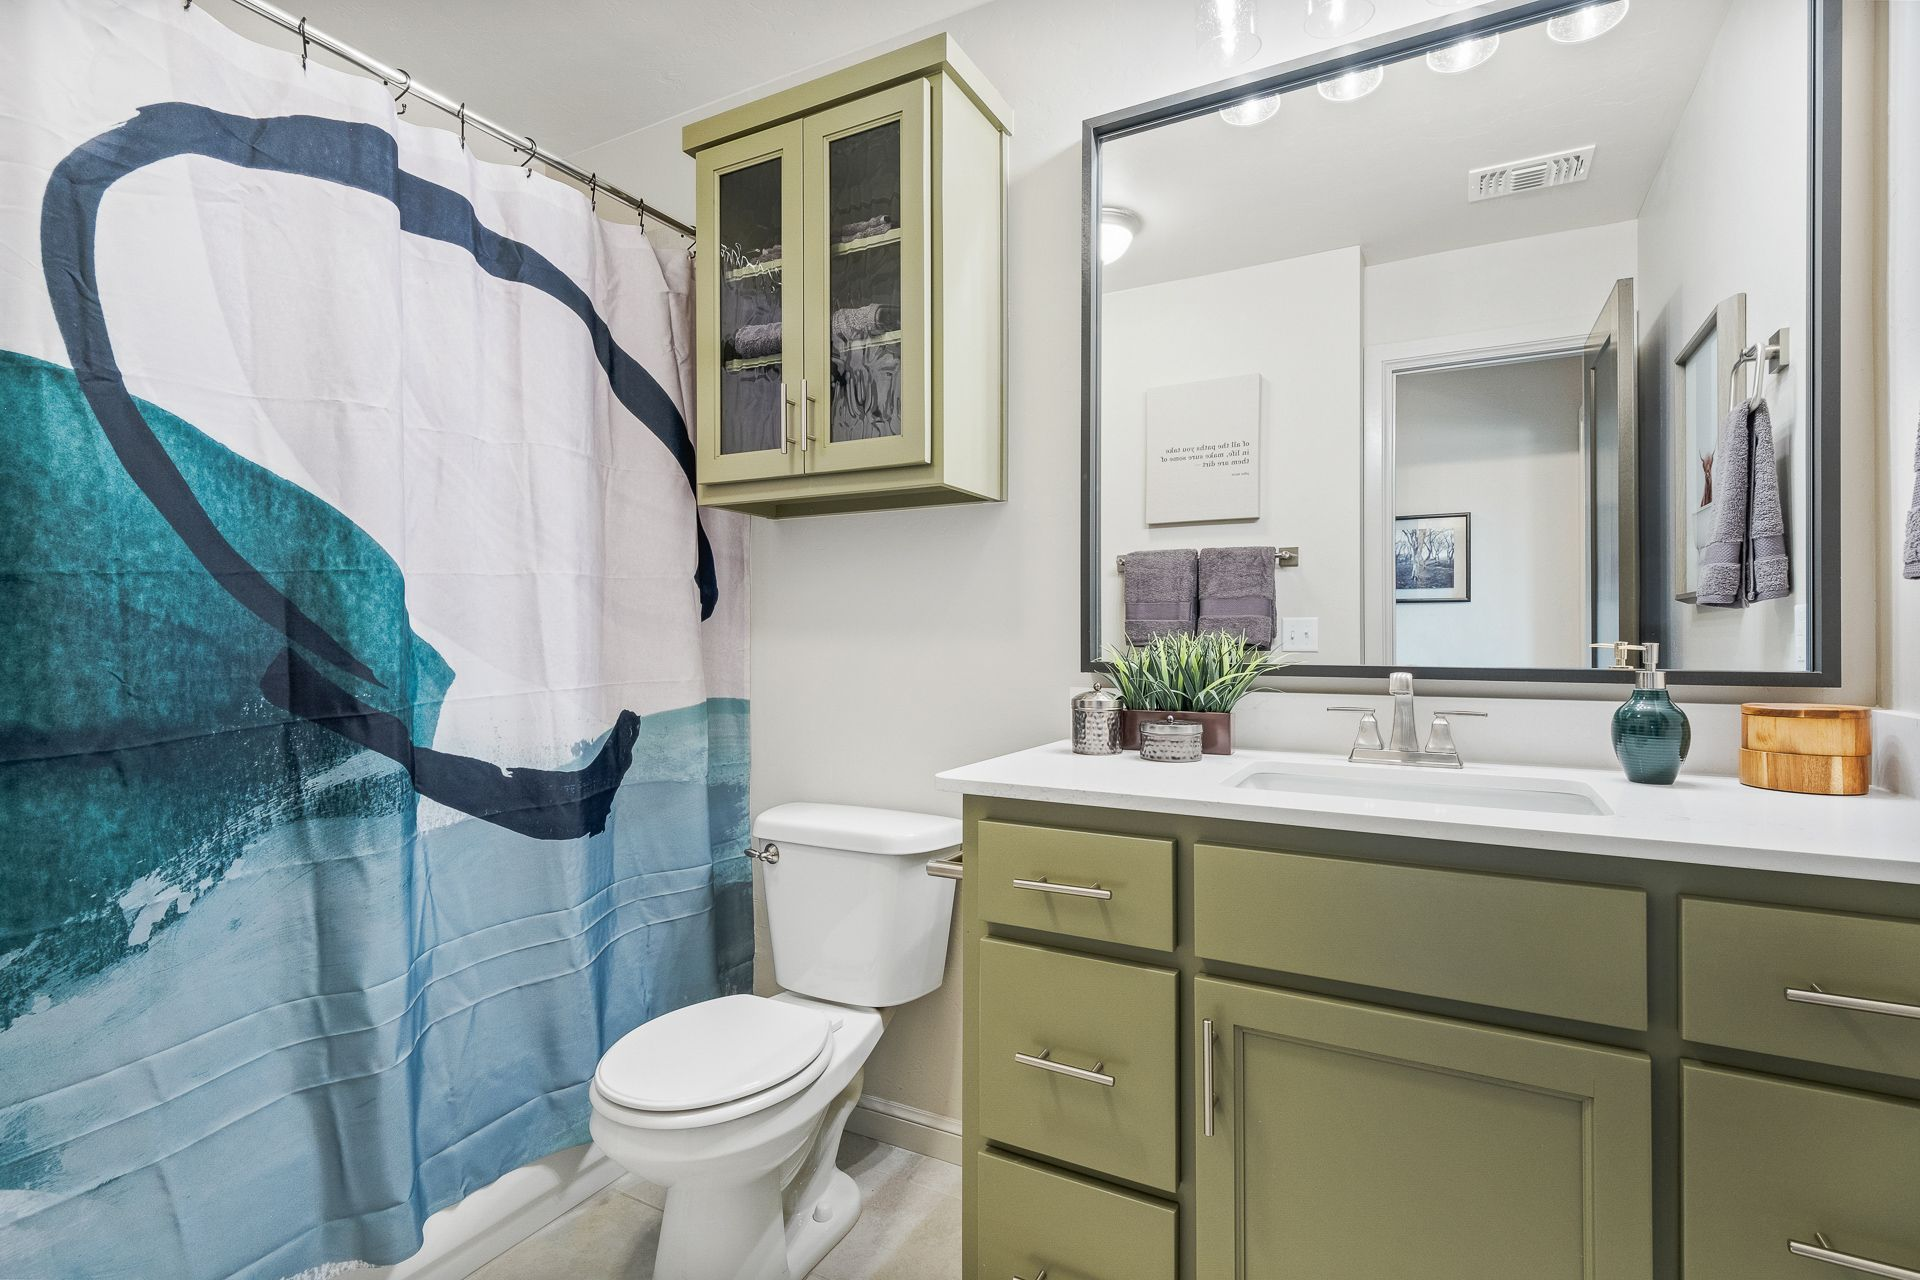 Bathroom featured in the Inwood By Ideal Homes in Oklahoma City, OK